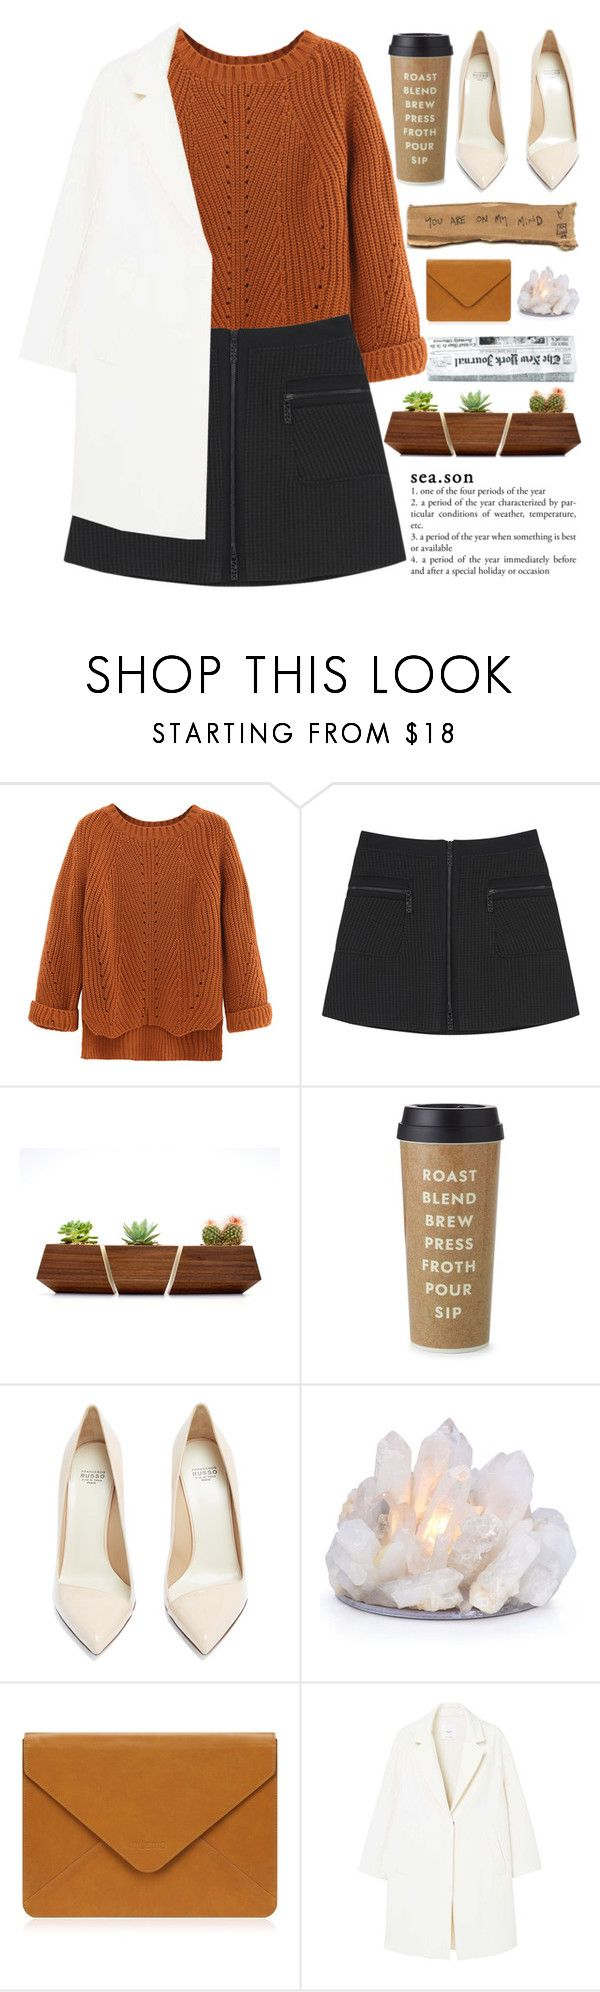 """A Fallen Star Fell"" by rredamancy ❤ liked on Polyvore featuring WithChic, Kenzo, Kate Spade, Francesco Russo and MANGO"